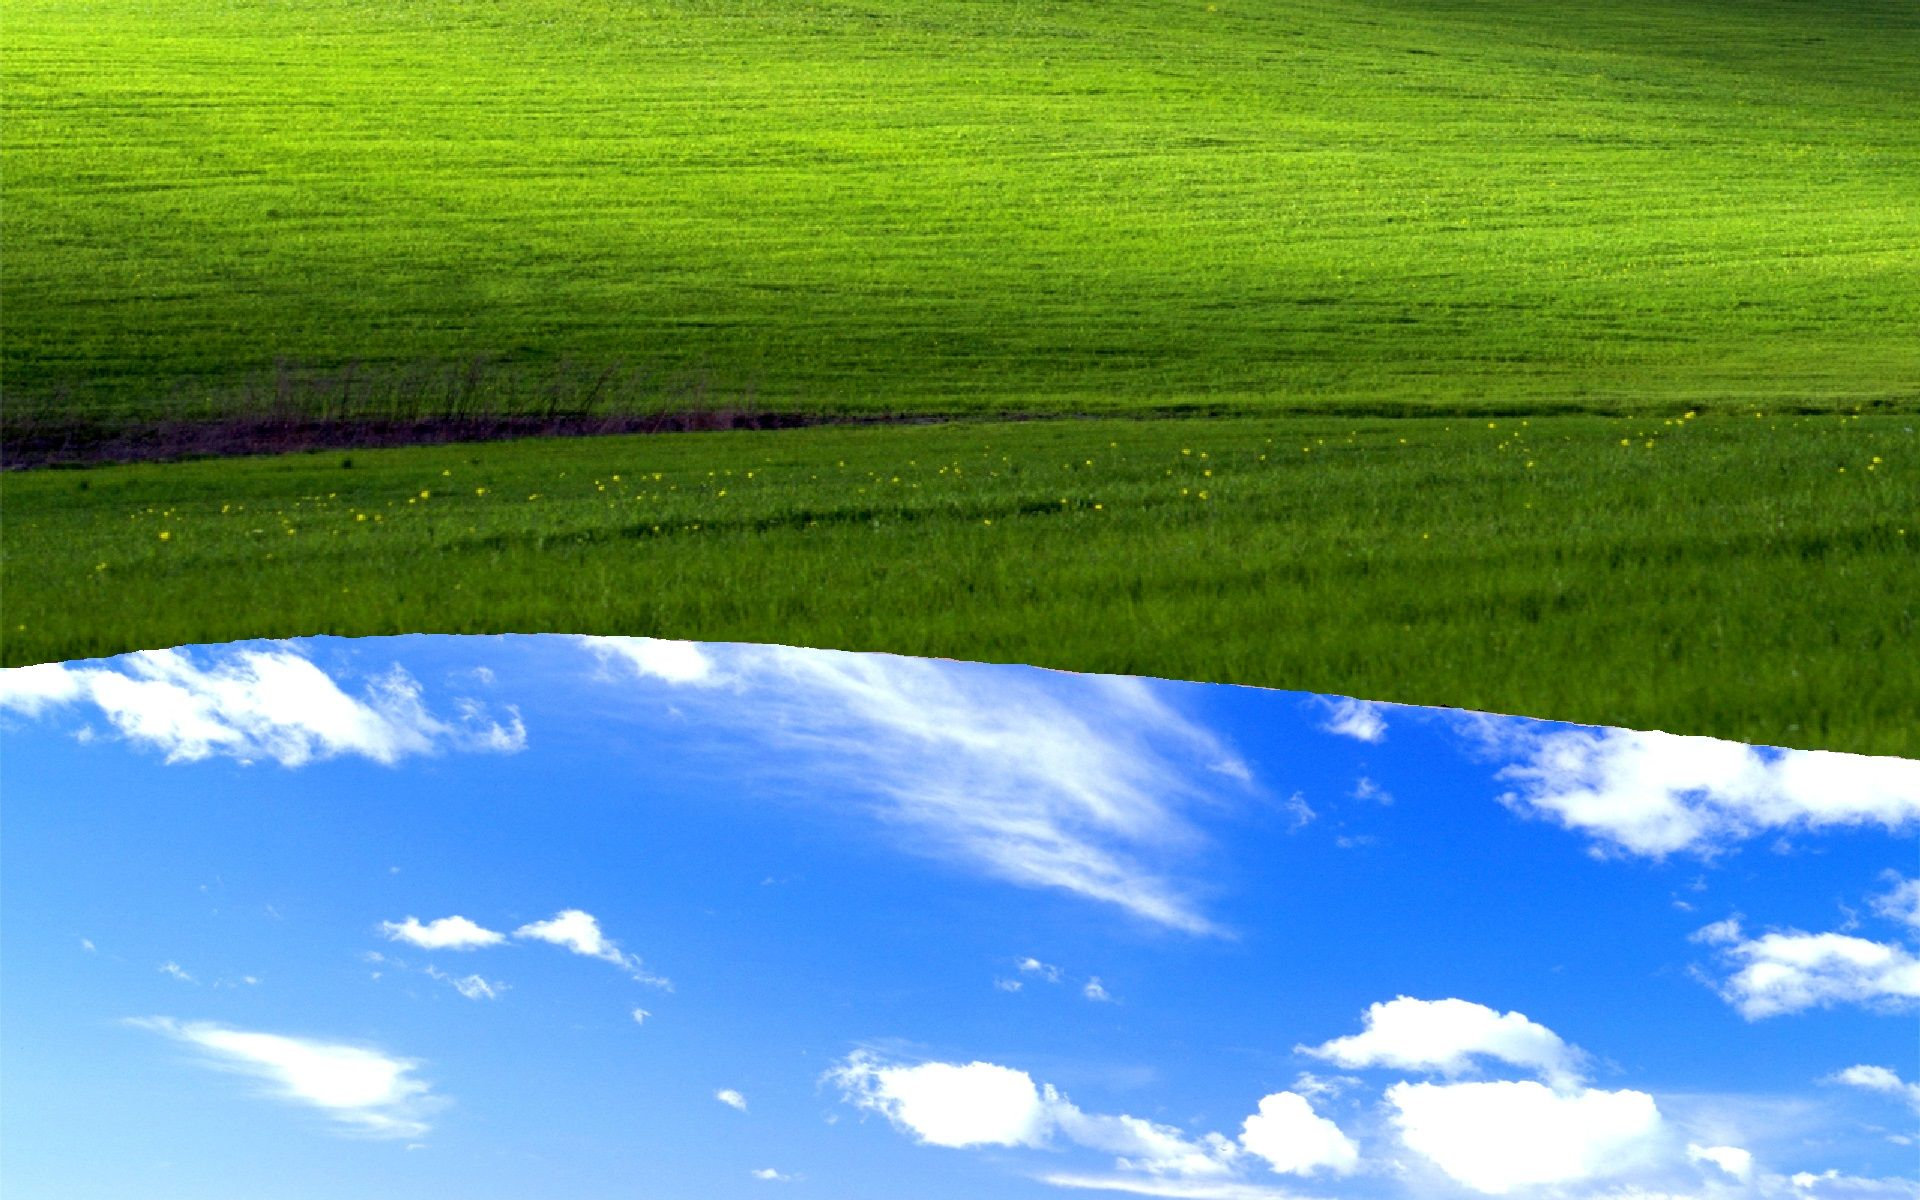 1024x768 Windows XP Wallpaper 3